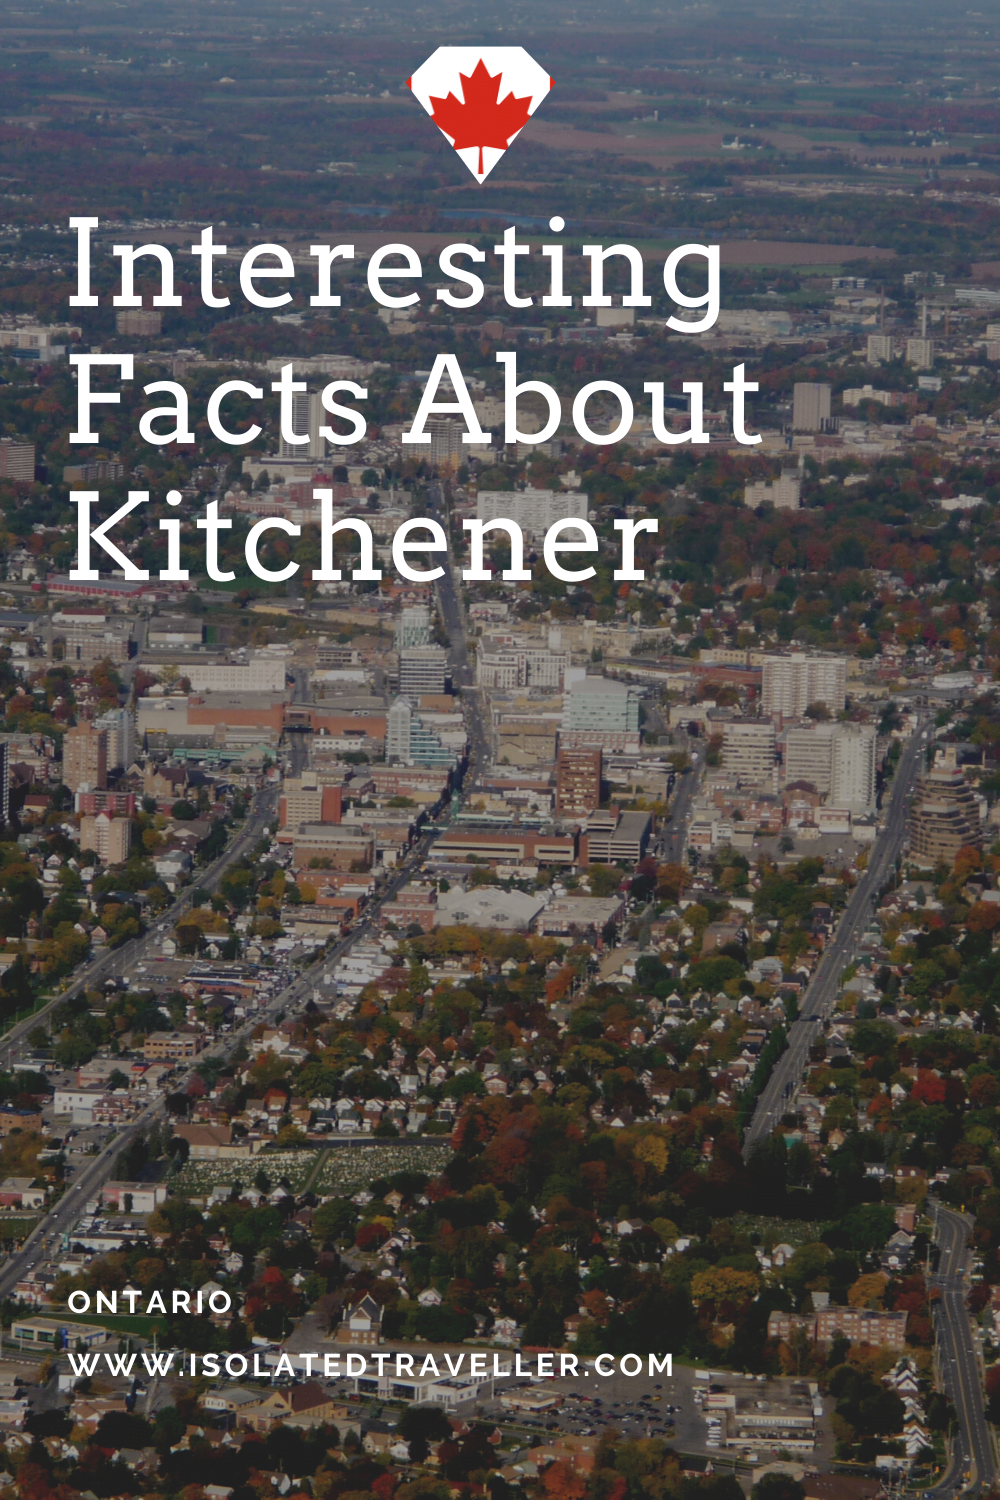 Facts About Kitchener